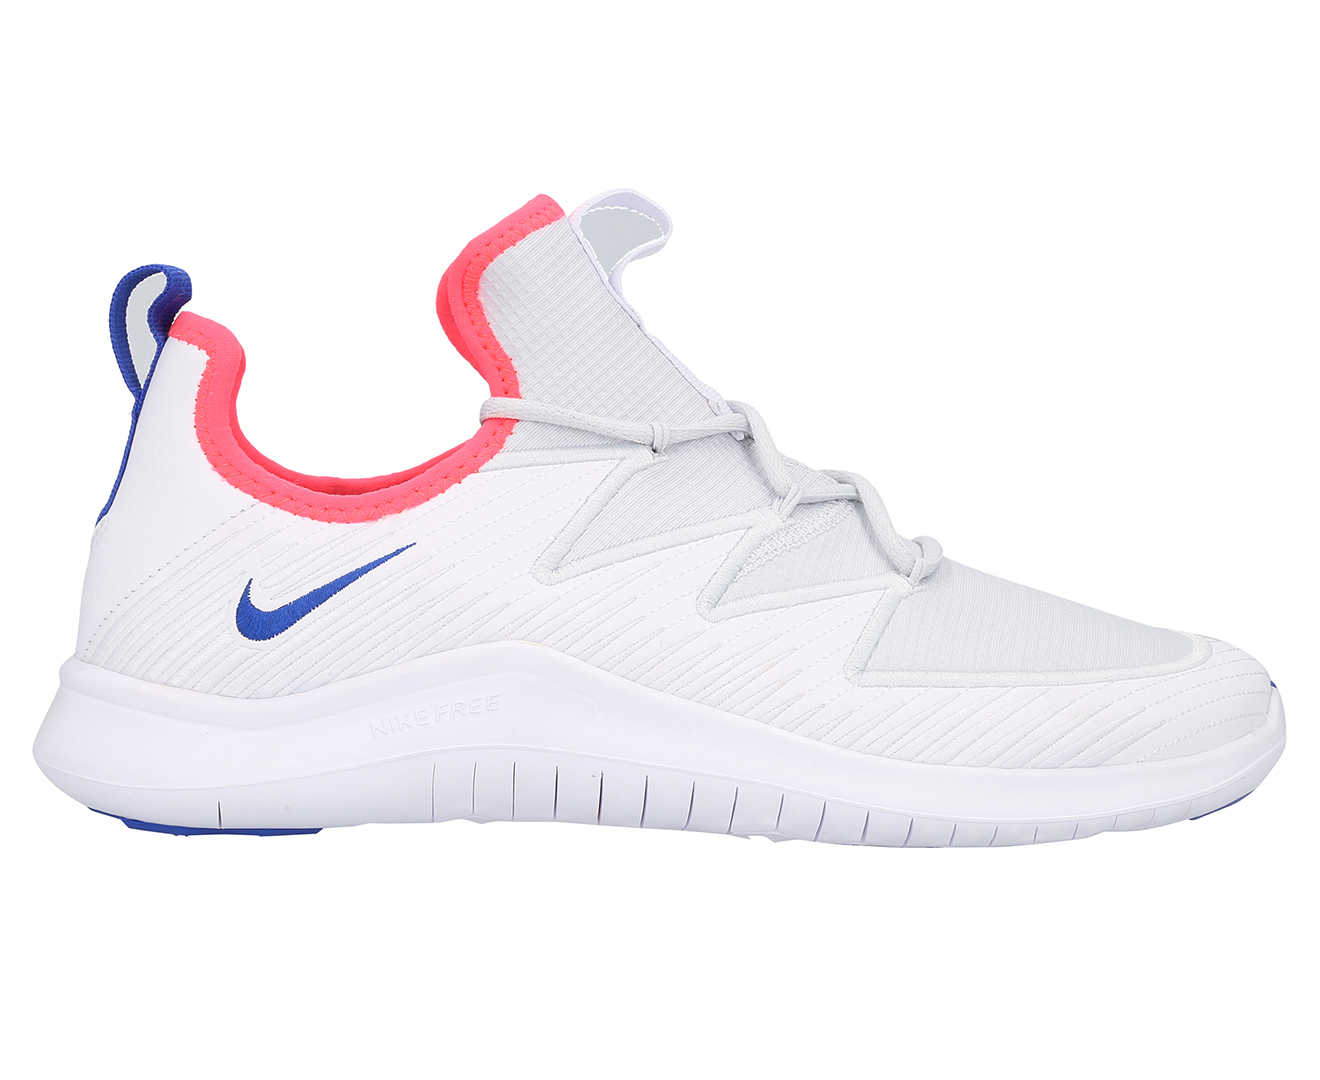 Details about Nike Women's Free TR Ultra Shoe WhiteRacer Blue Pure Platinum